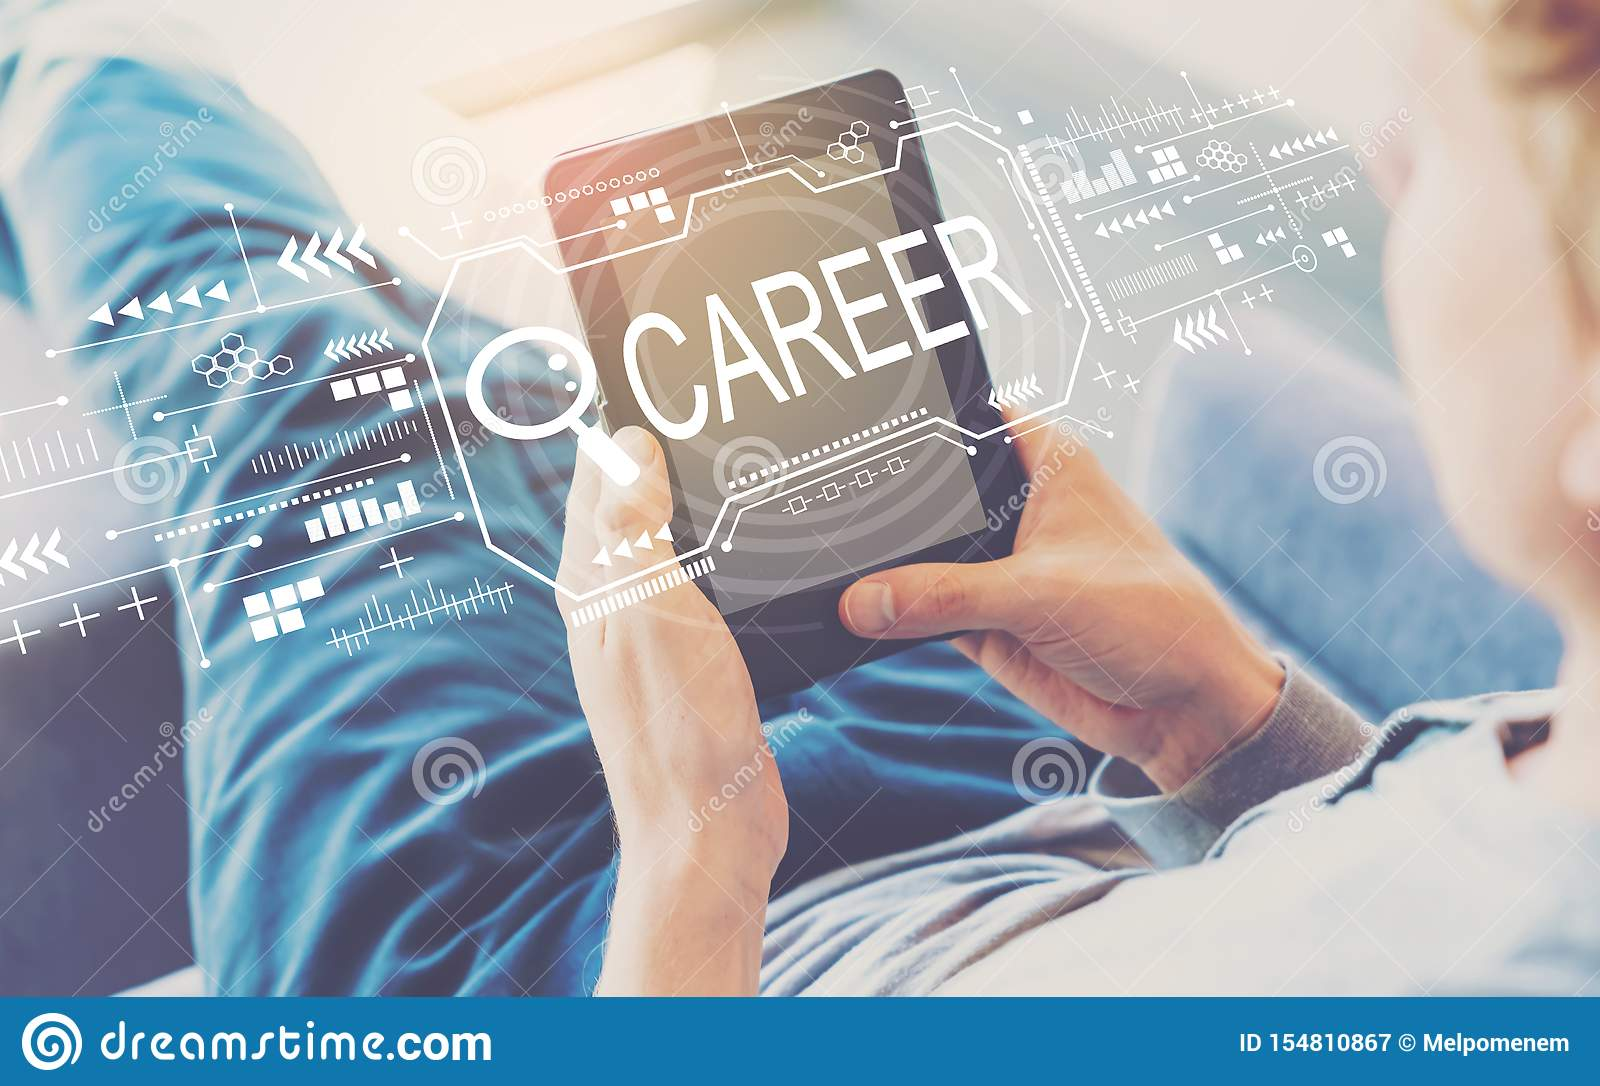 Searching career theme with man using a tablet